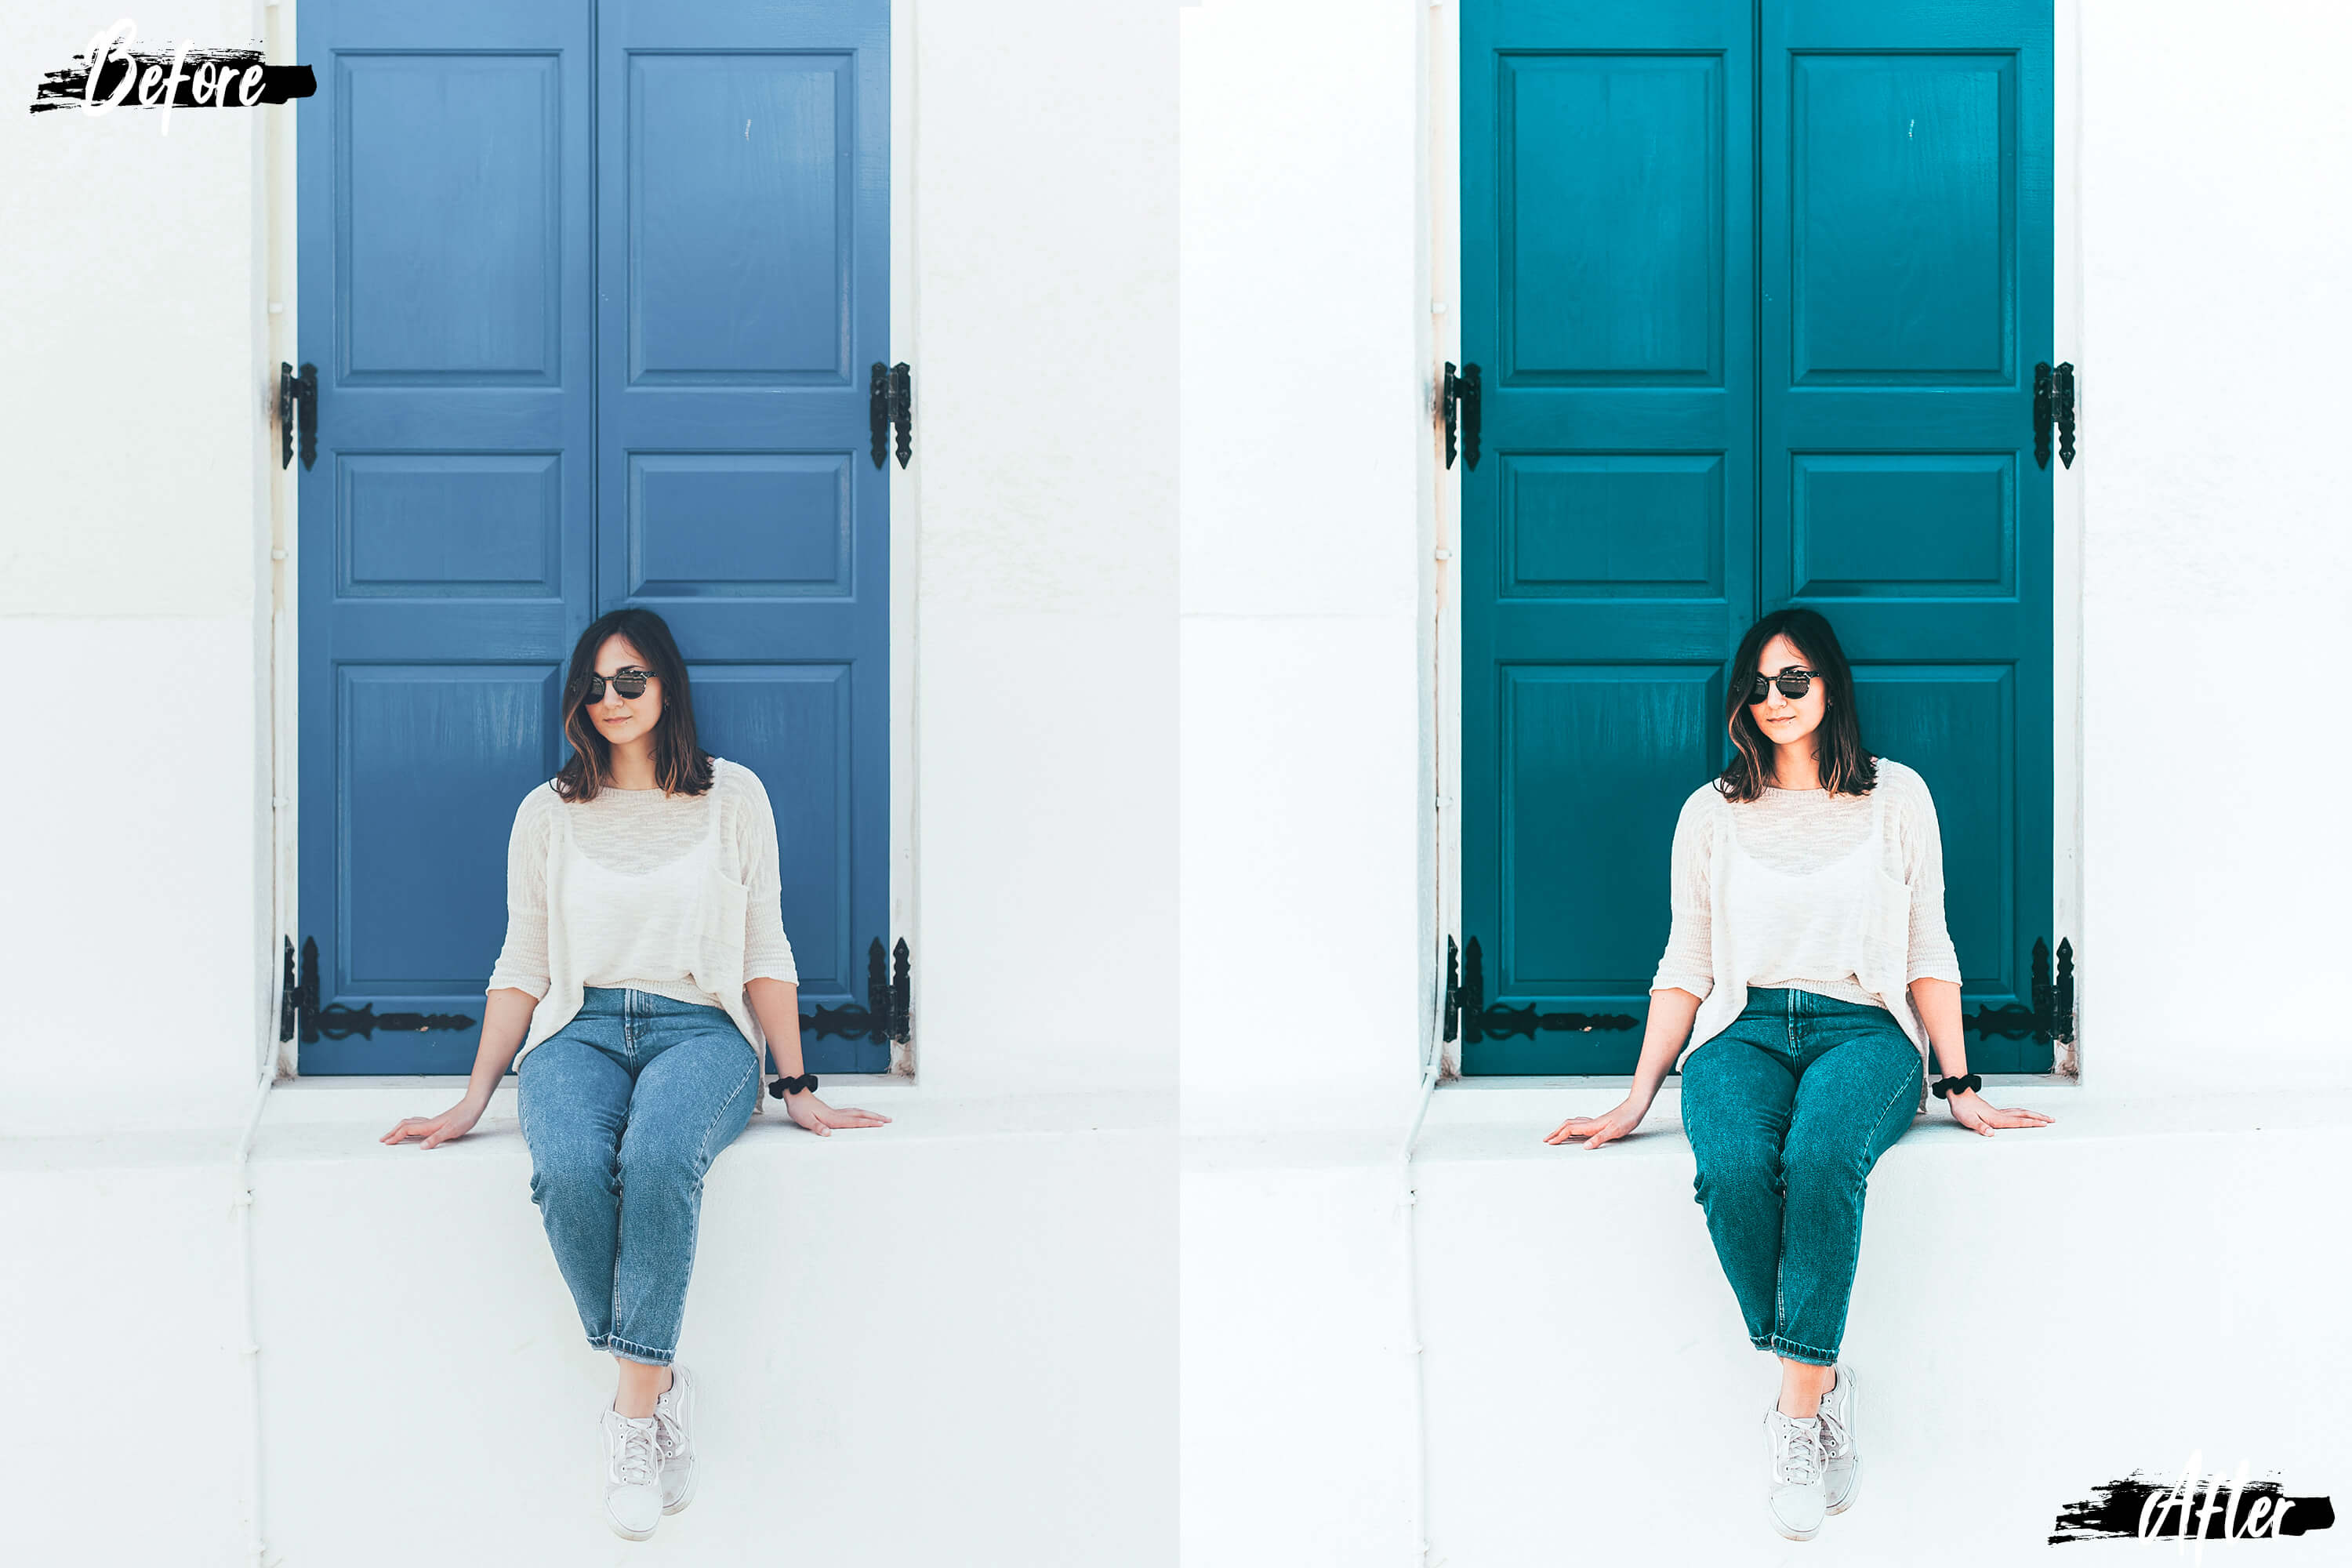 5 White Land Mobile Lightroom Presets, Bright portraiture example image 2